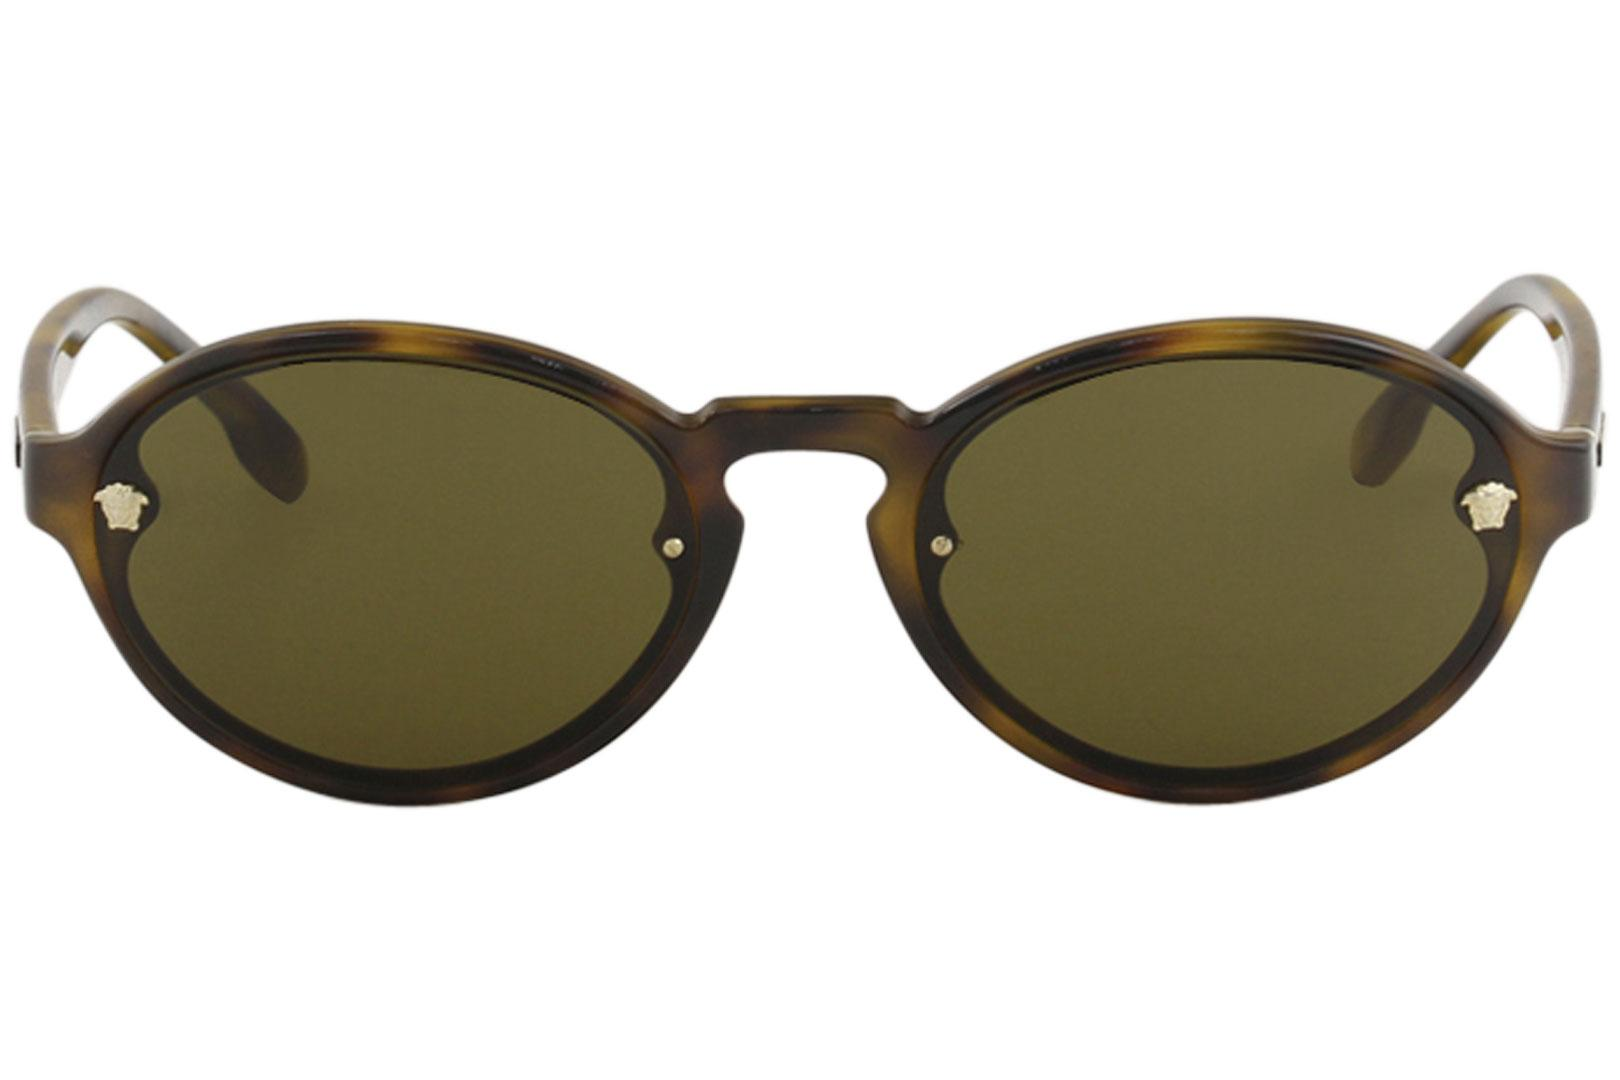 9580a5a6aed6e Versace Women s VE4352 VE 4352 Fashion Oval Sunglasses by Versace. 12345